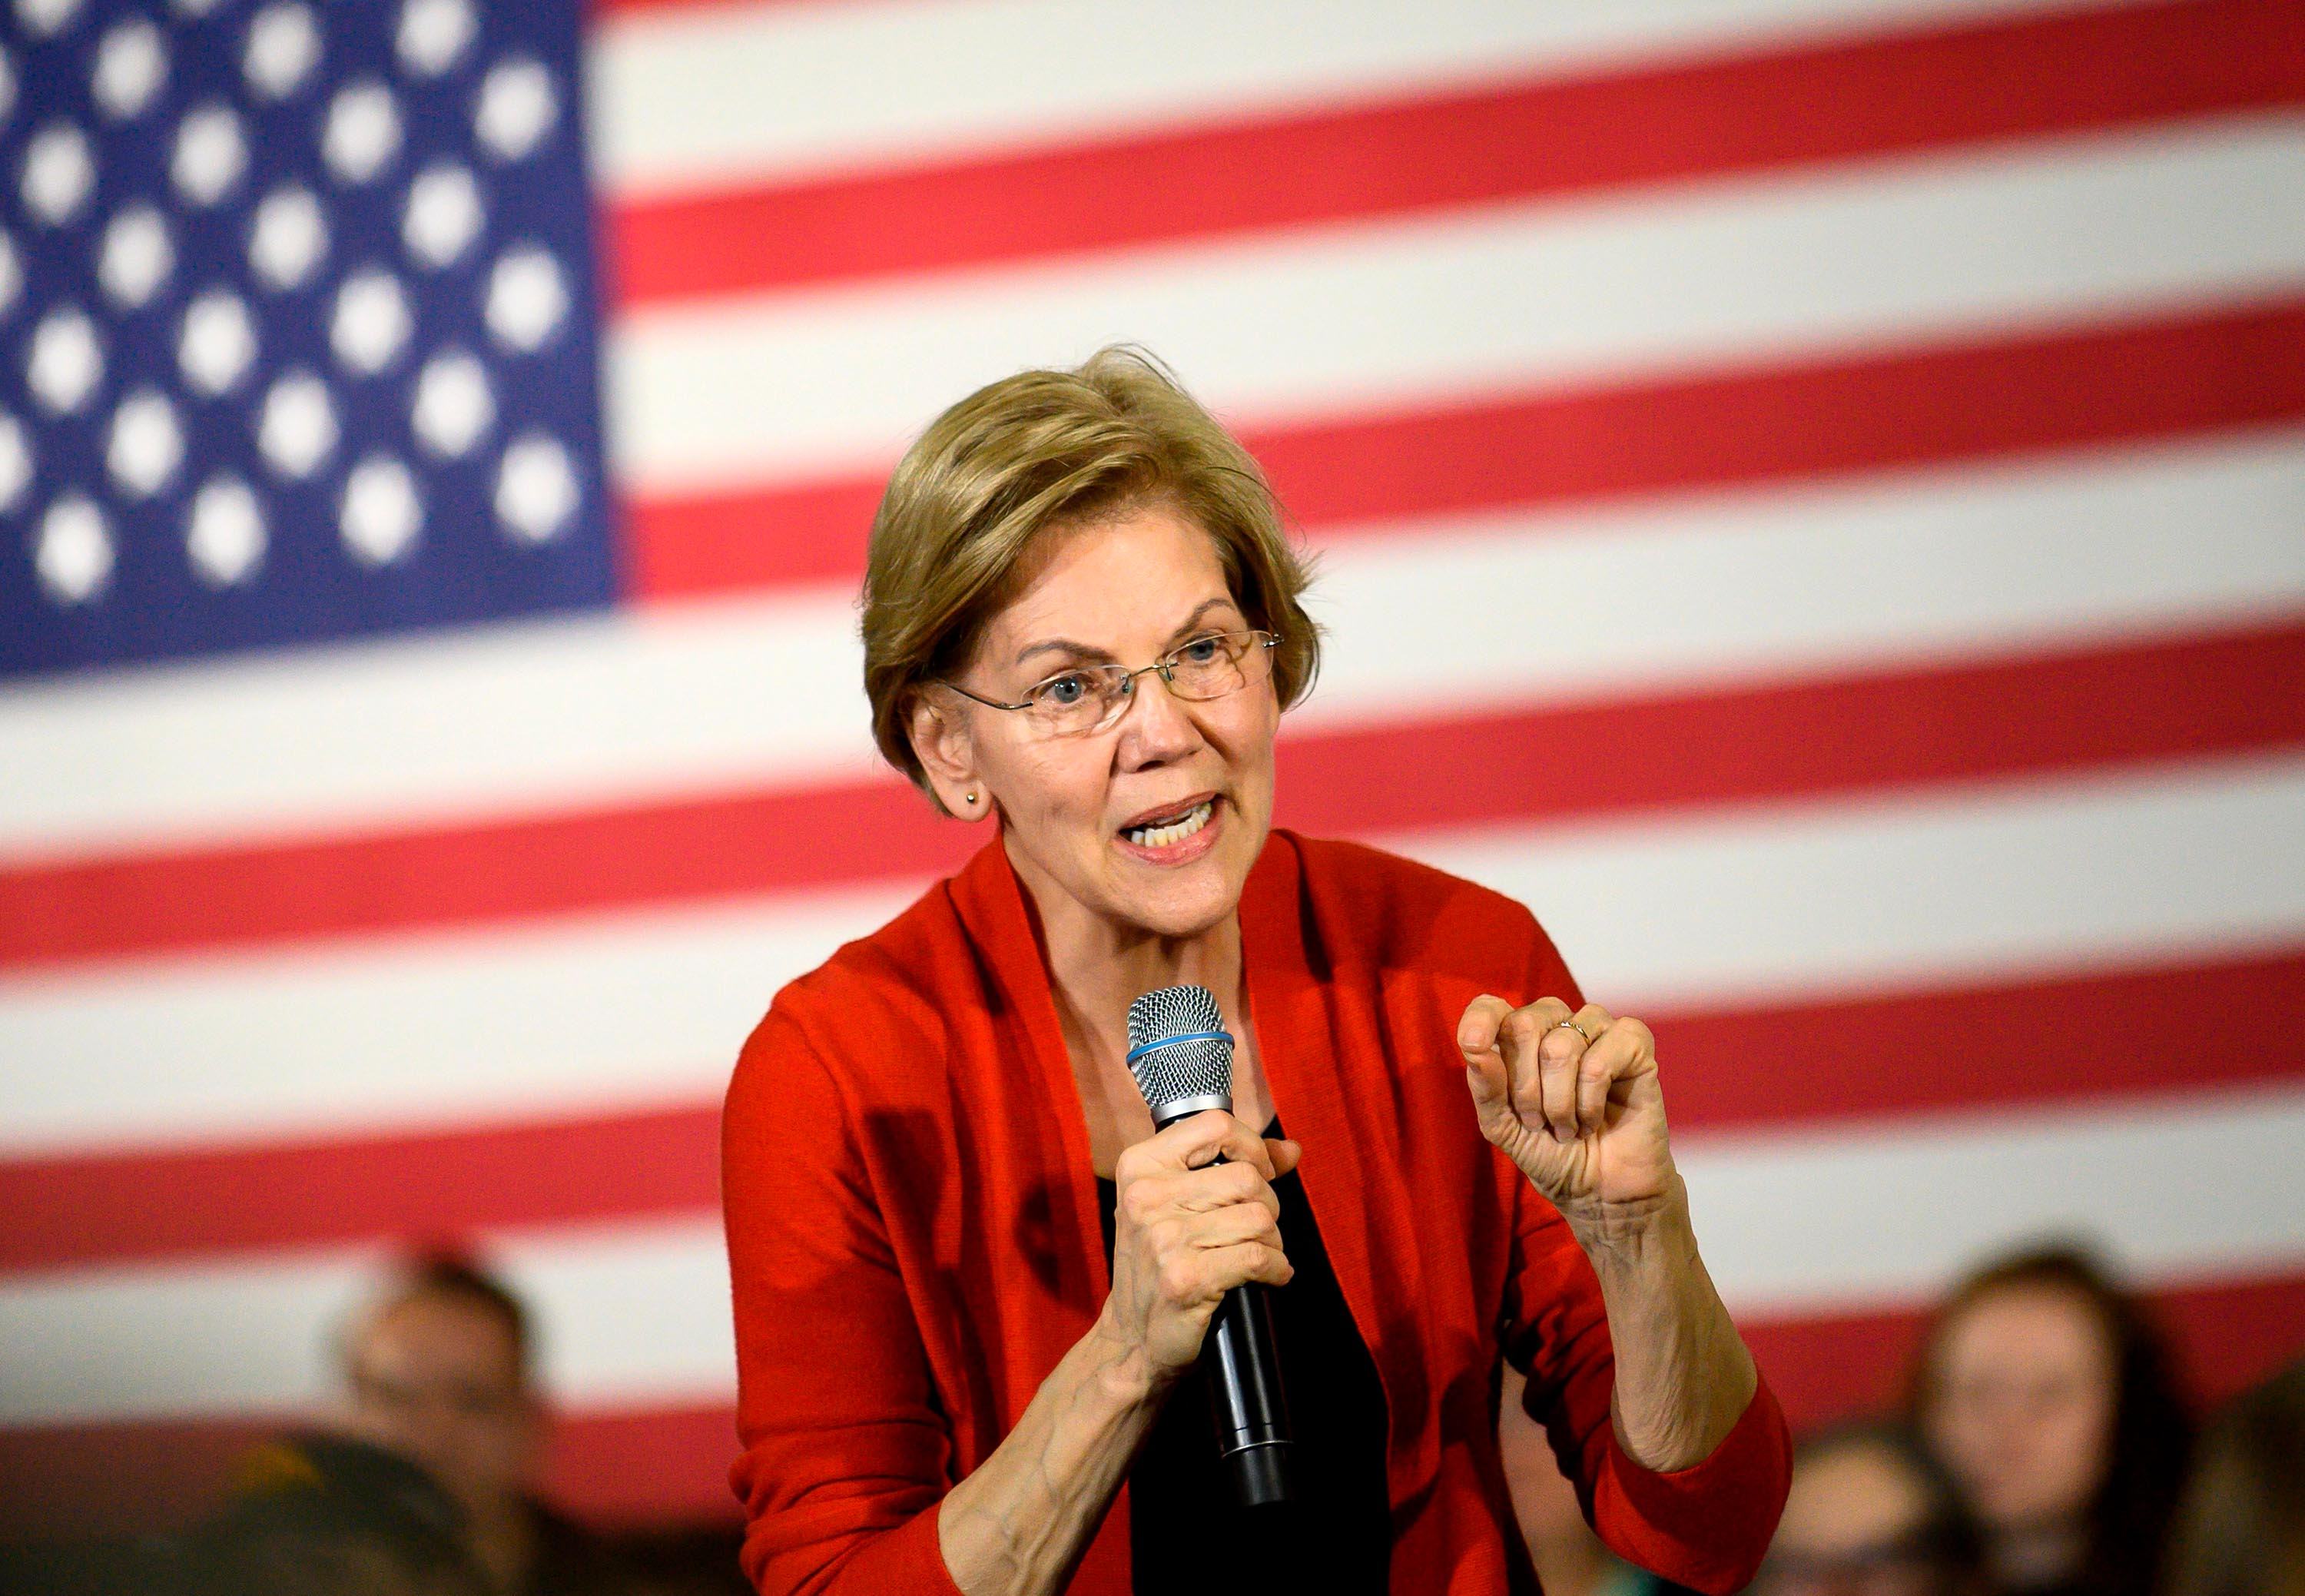 Elizabeth Warren goes all in on electability in the final sprint to Iowa